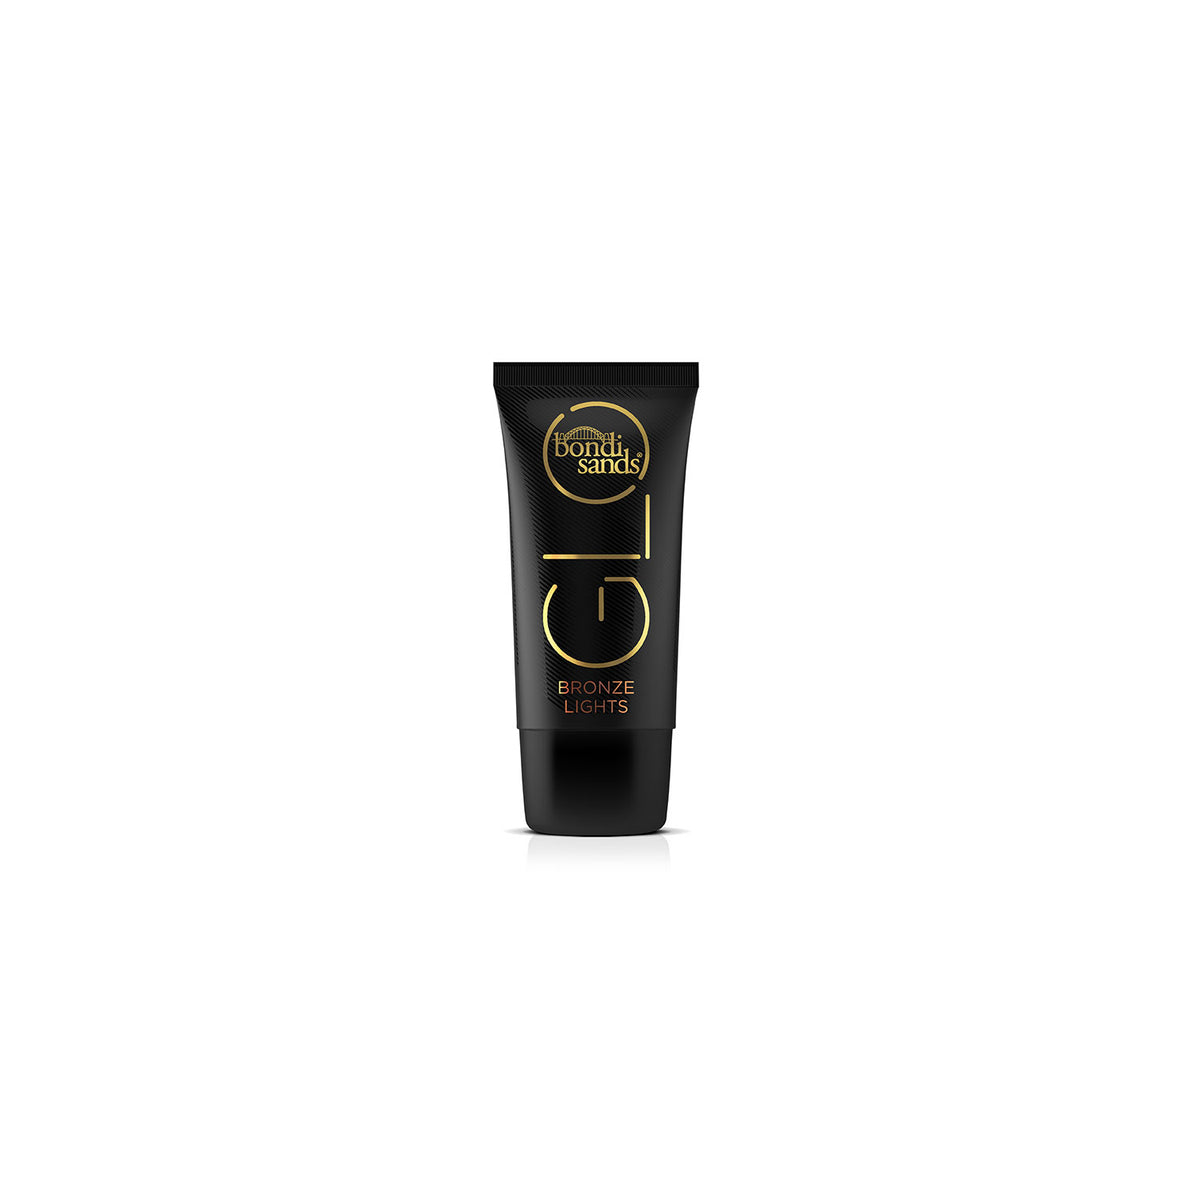 Bondi Sands Glo Lights Bronze 25ml